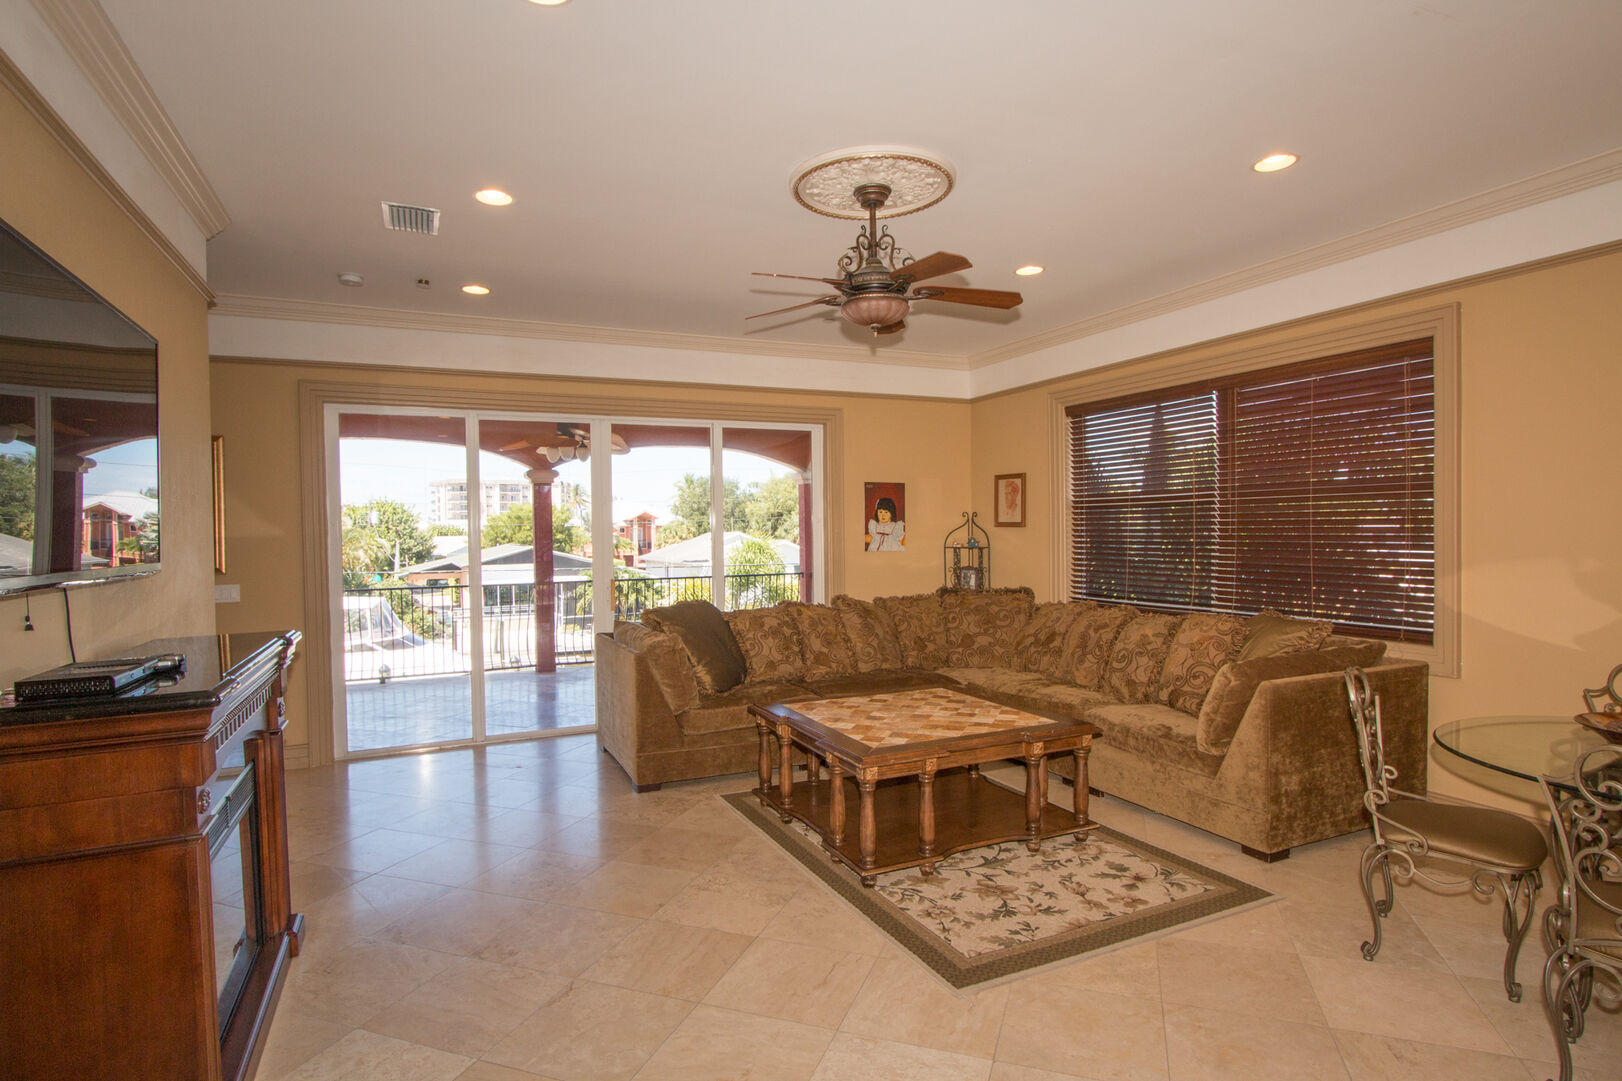 Living area with couch and patio access in our vacation home in Fort Myers Beach